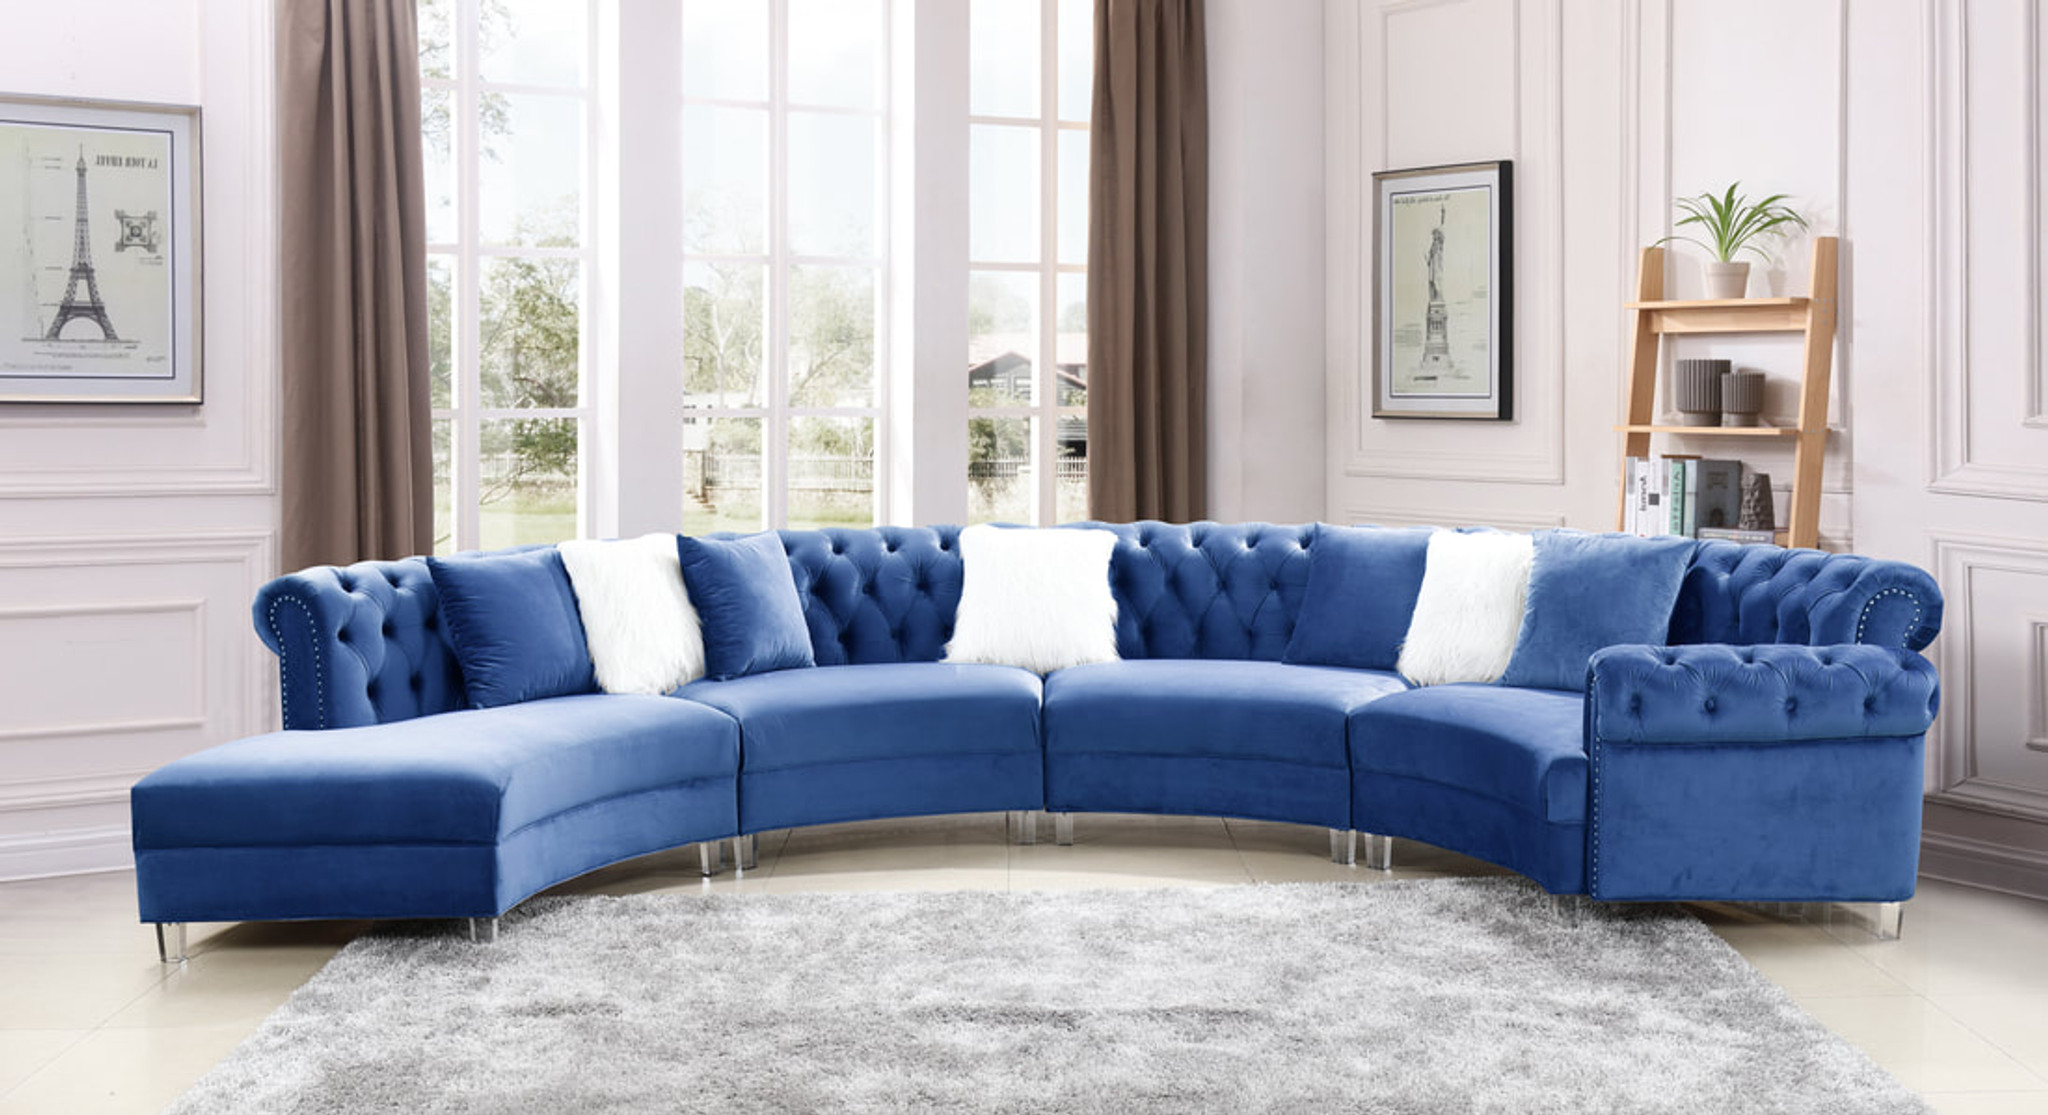 4pc Fendi Blue Velvet Sectional Sofa By Happy Home Industries